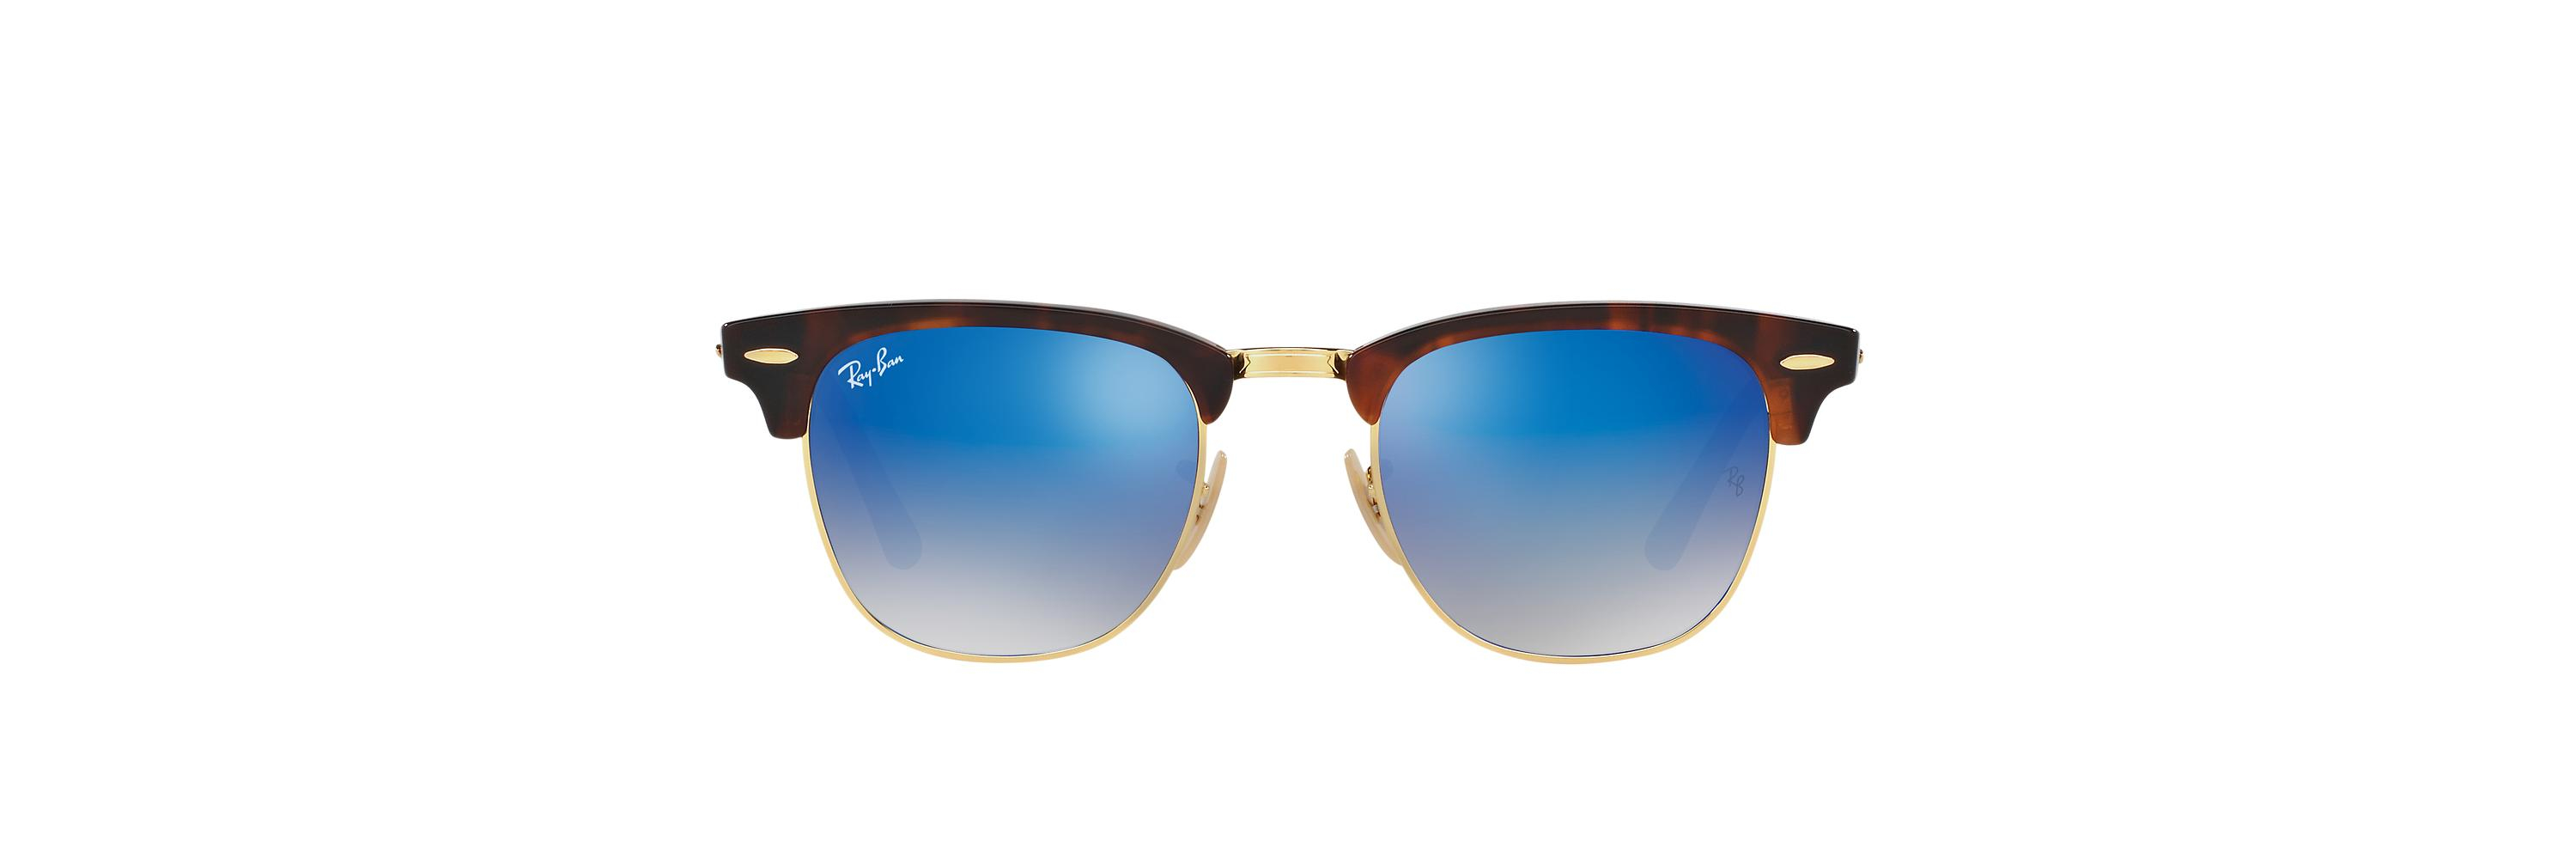 ray ban clubmaster 3016 polarized safety sunglasses